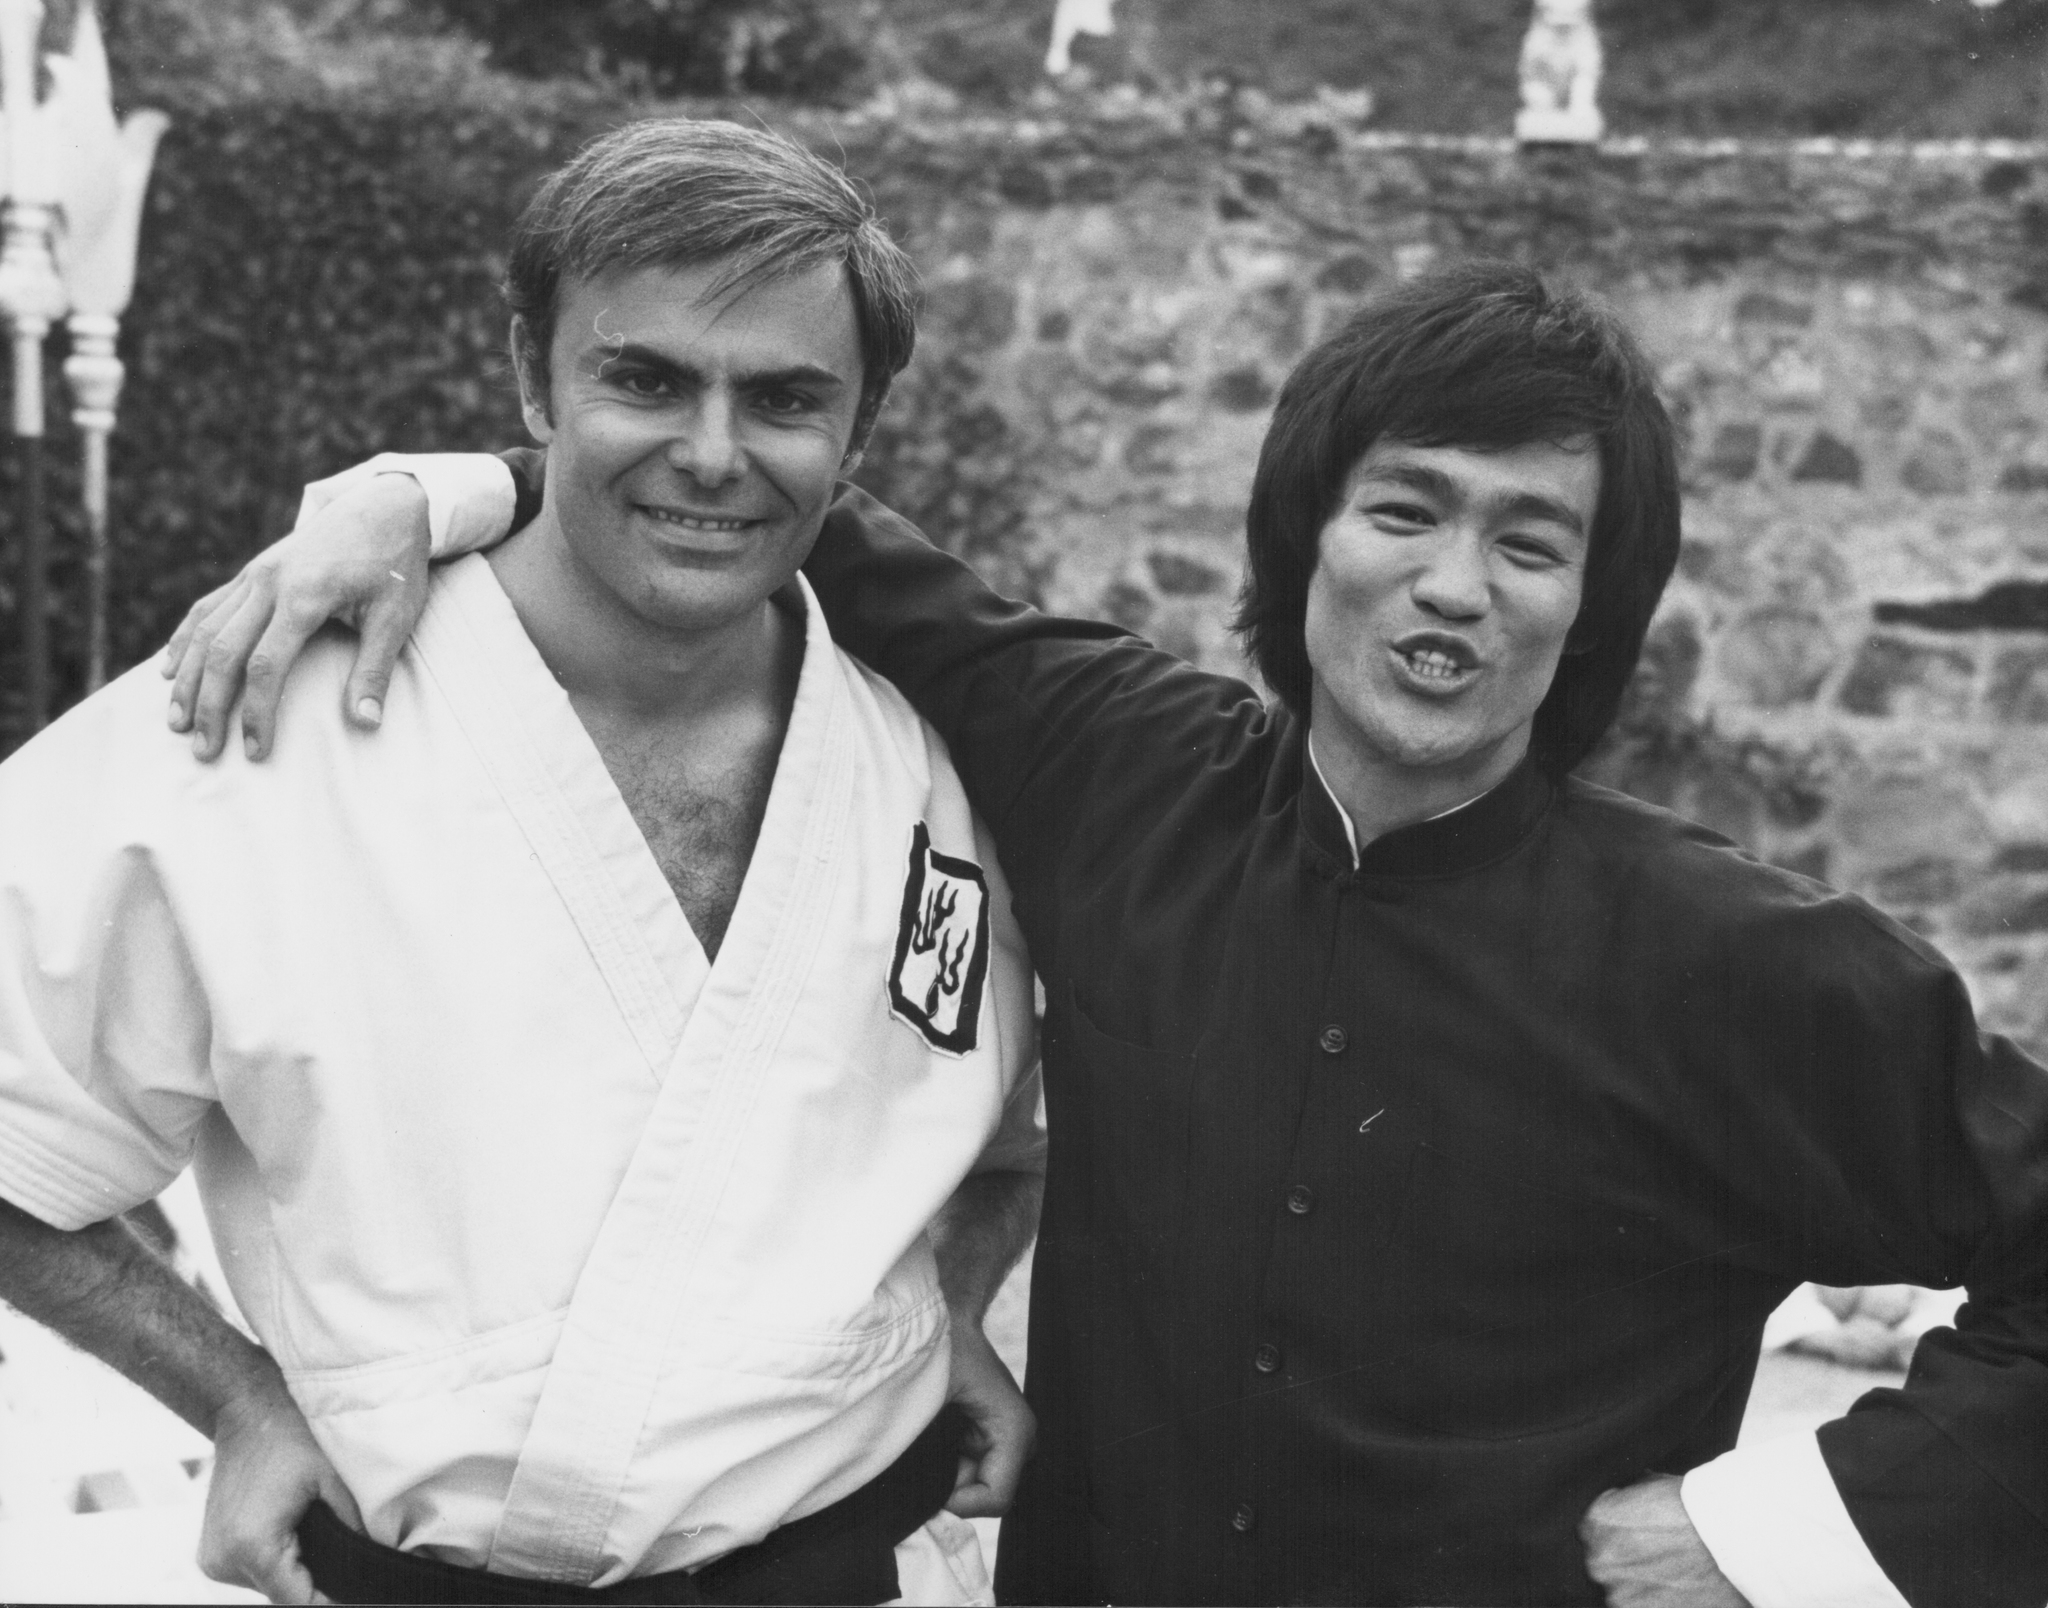 Bruce Lee and John Saxon in Enter the Dragon (1973)